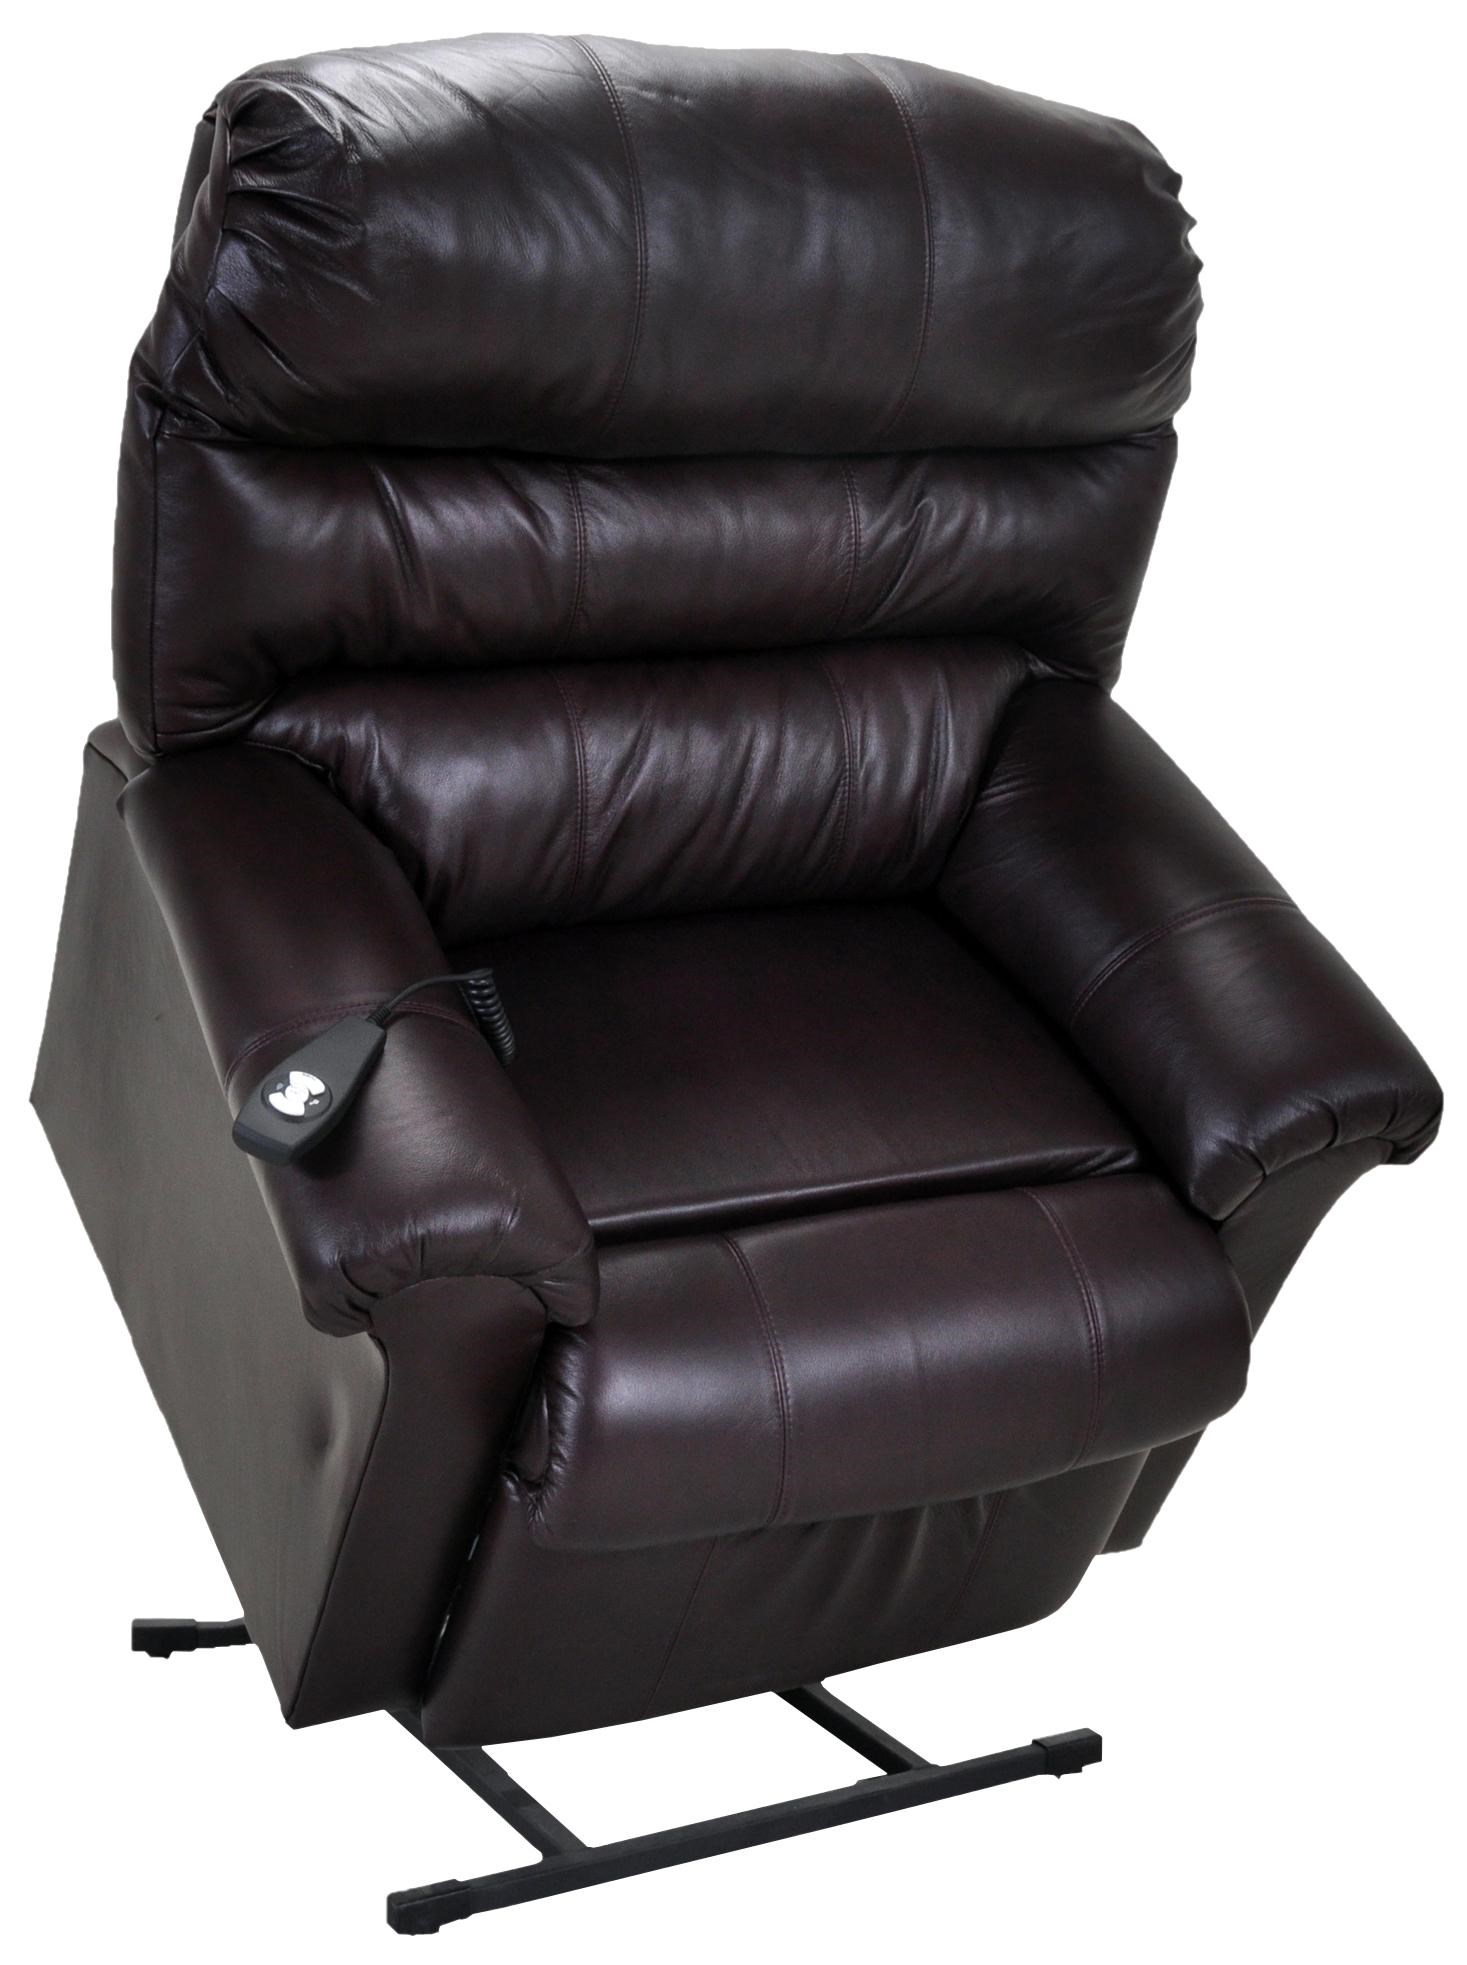 Franklin Lift and Power Recliners Chocolate Leather Lift Chair - Great American Home Store - Lift Recliner  sc 1 st  Great American Home Store & Franklin Lift and Power Recliners Chocolate Leather Lift Chair ... islam-shia.org